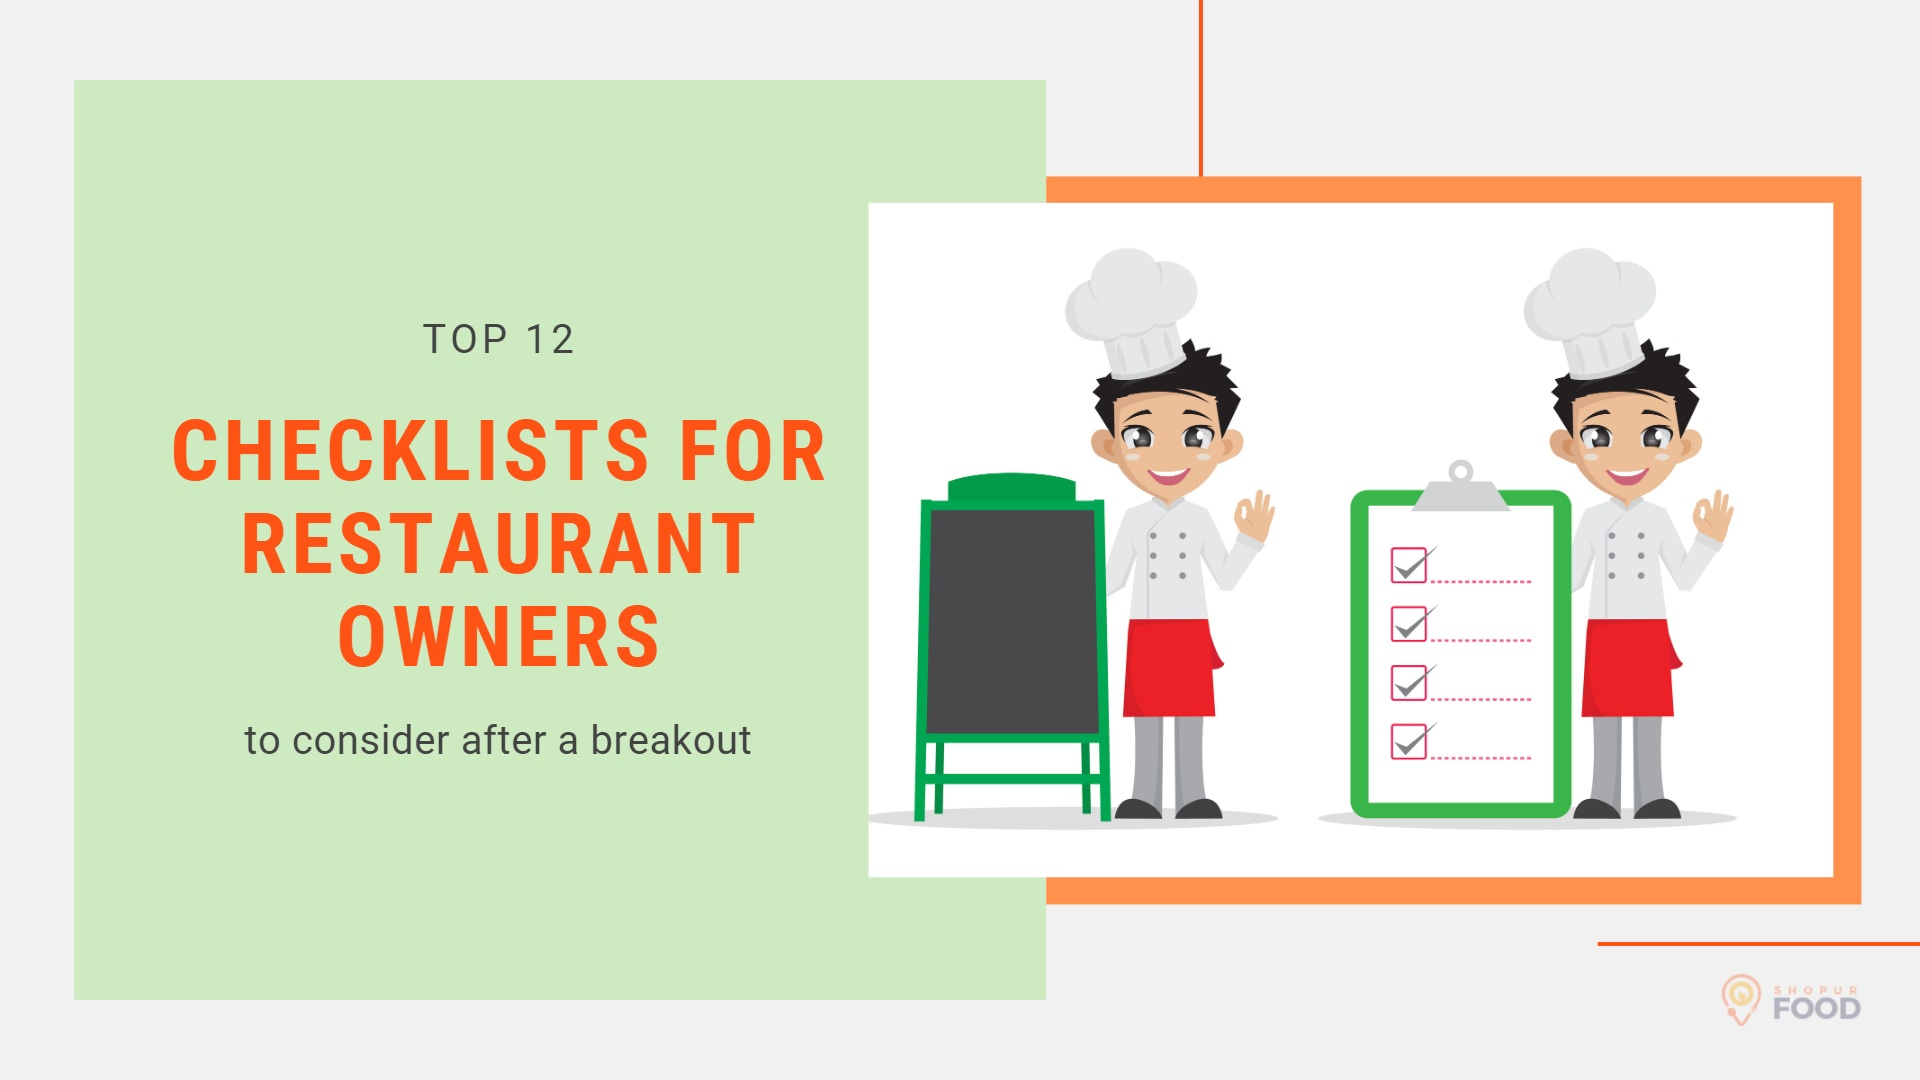 Checklists for Restaurant owners